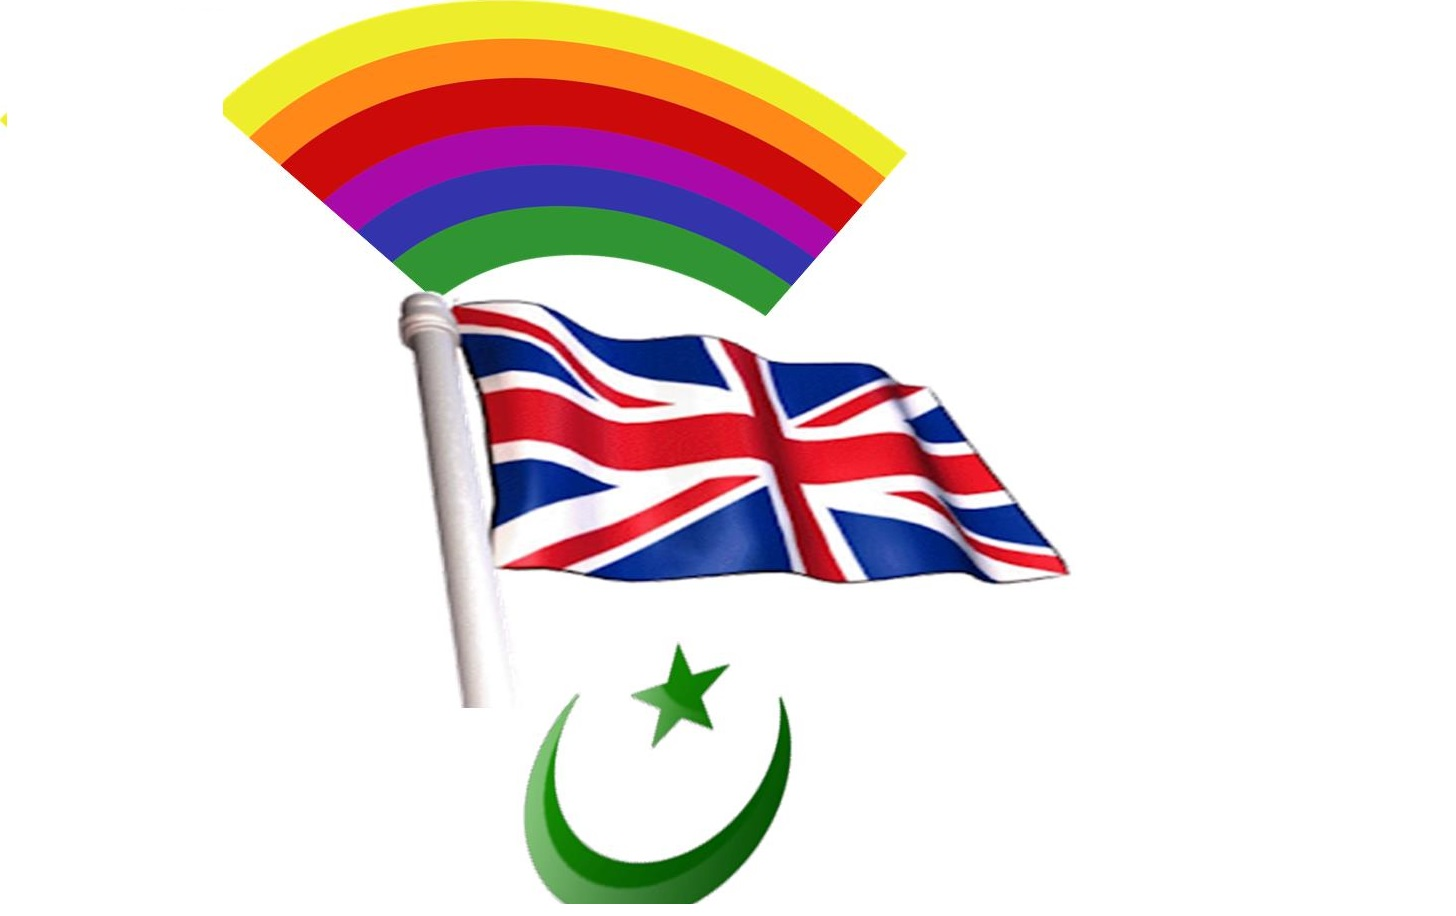 LGBT Education and the Muslim-Liberal Divorce in United Kingdom